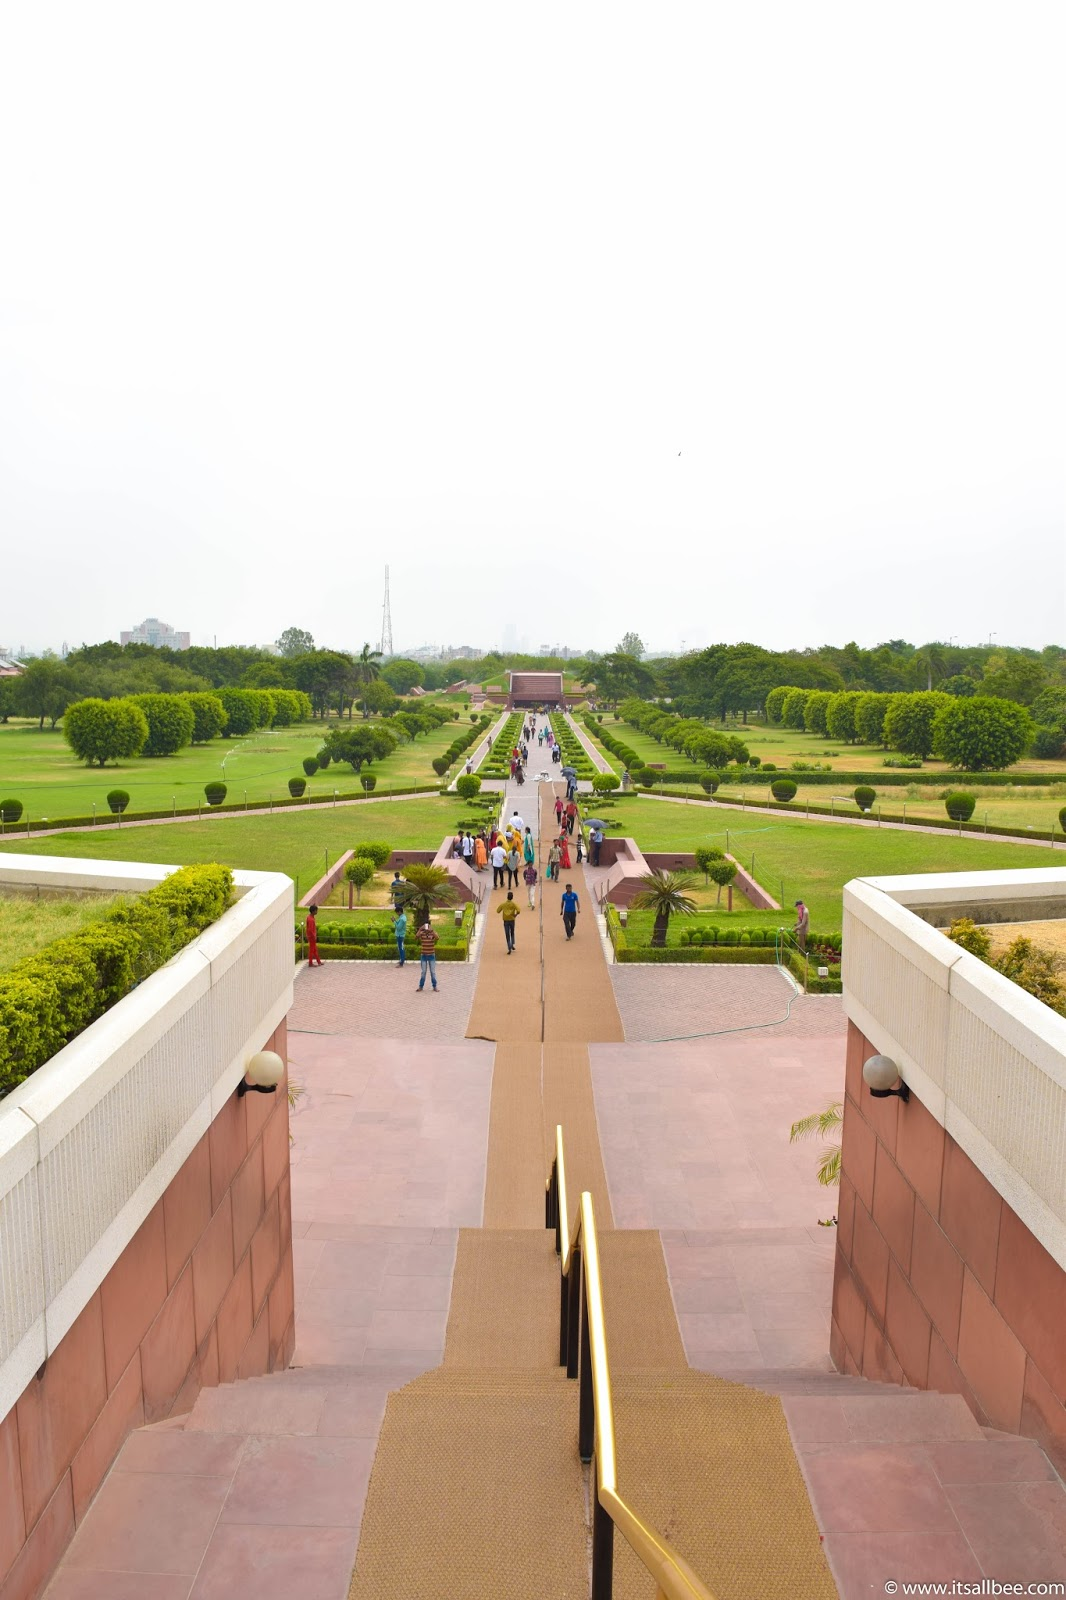 Lotus Temple of Delhi- Exploring The Bahai Temple in New Delhi